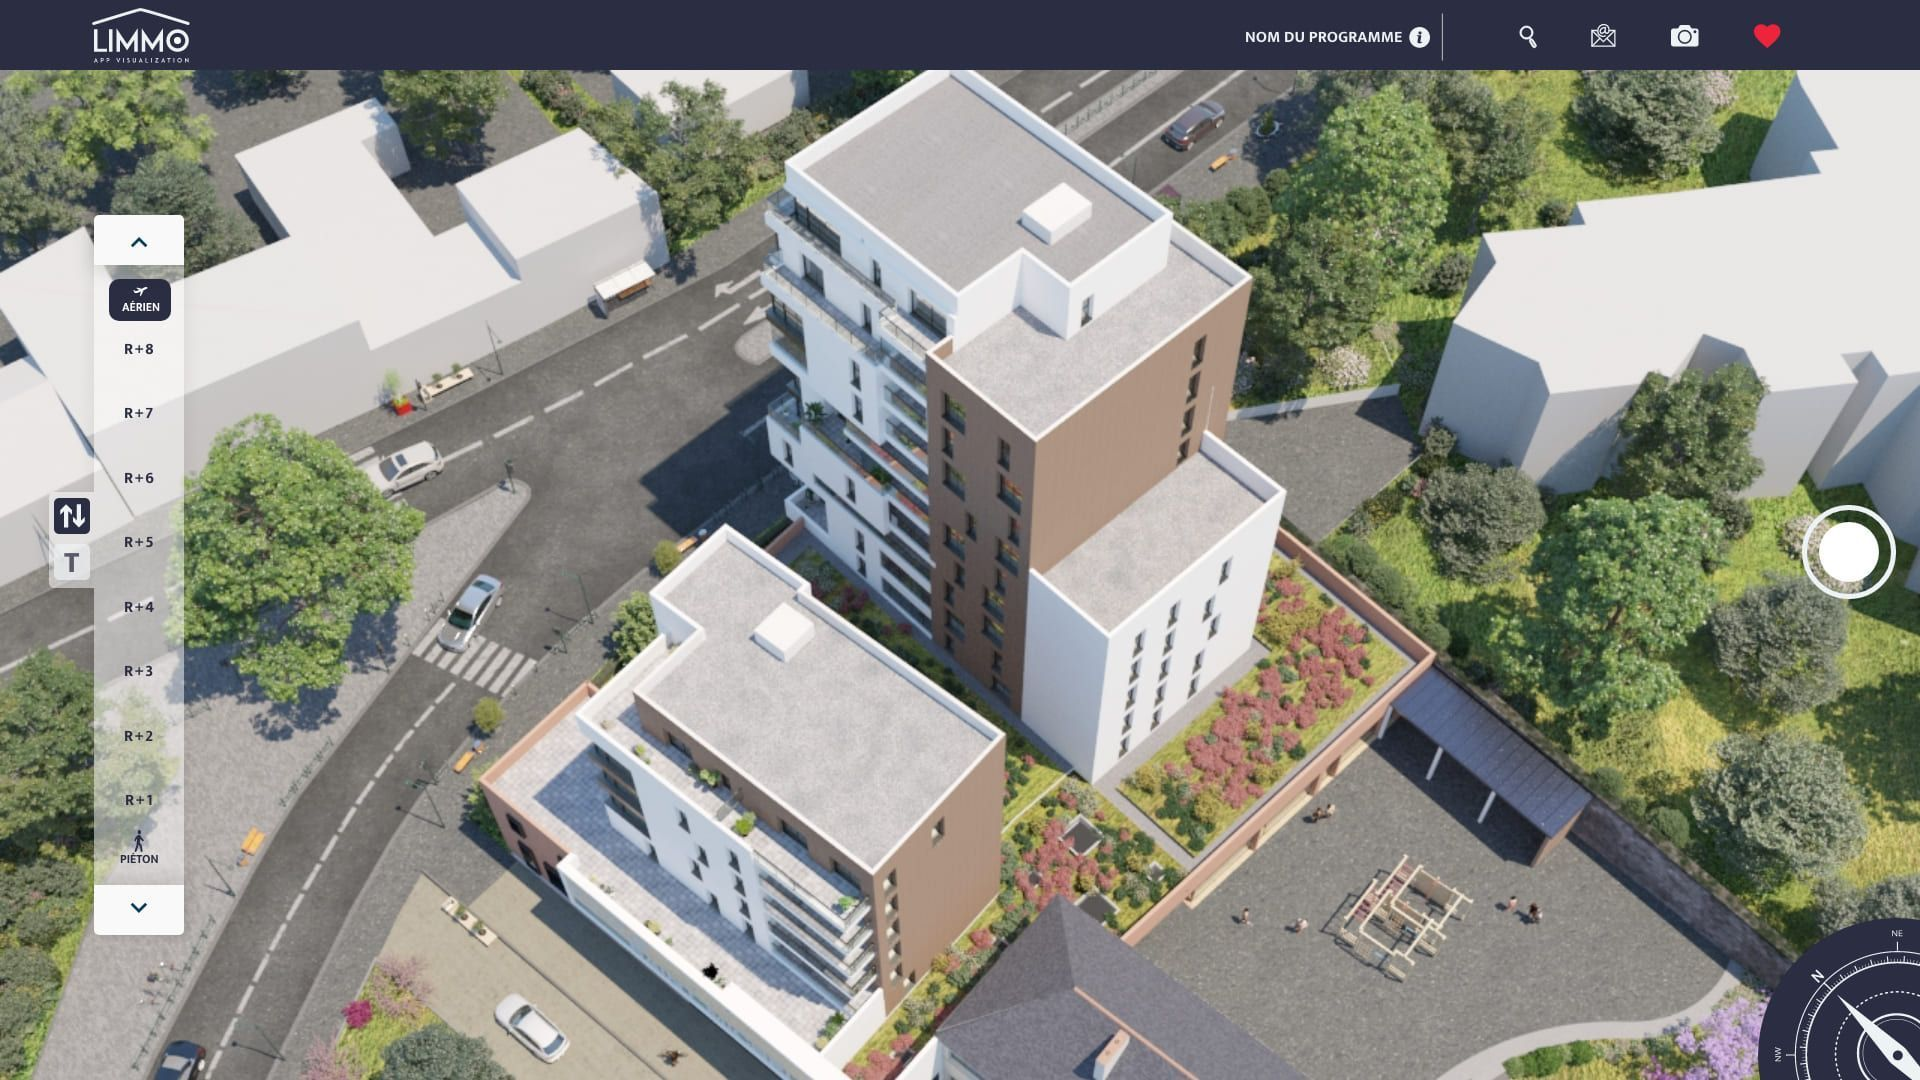 Limmo Application visualisation Immobiliere